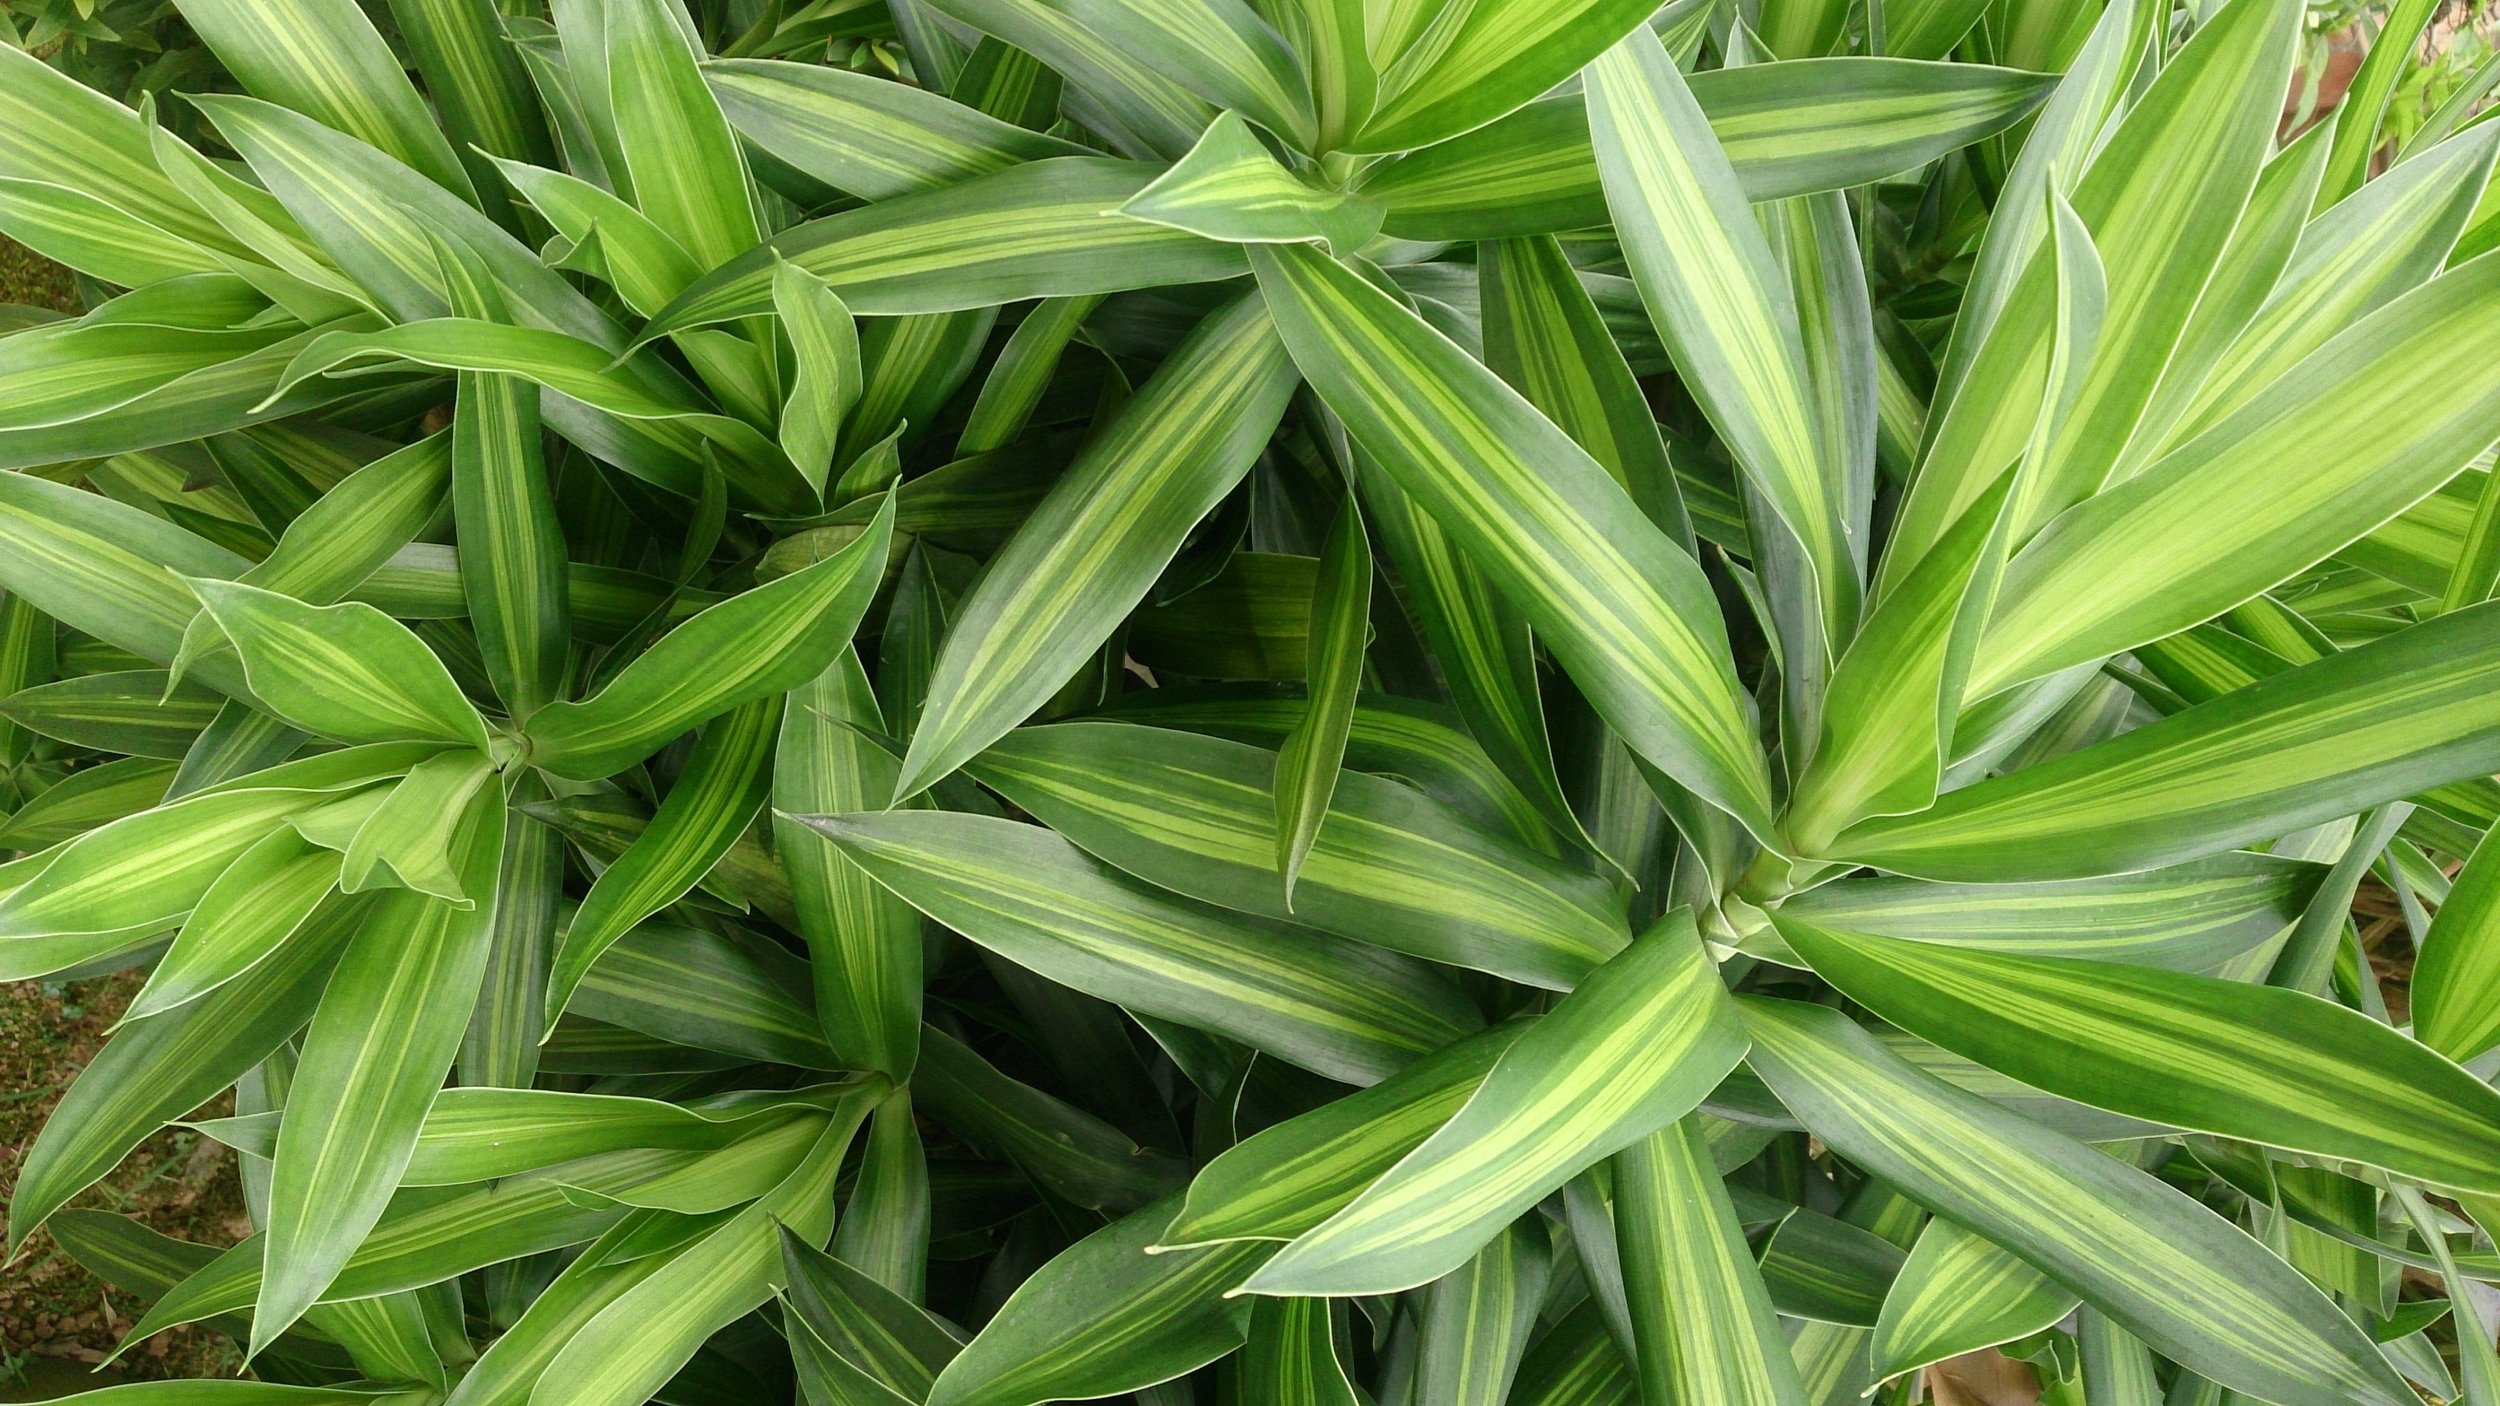 7. Dracaena - This beautiful houseplant has colorful yellow-and-green-striped leaves and a single upright stem. It is often called a 'corn plant' because it resembles a decorative corn stalk. Several can be planted together for a more full display. When it grows too tall, cut back the stem to one foot tall and new growth will form under the cut.Light: Medium to Bright Water: Allow surface to dry between waterings